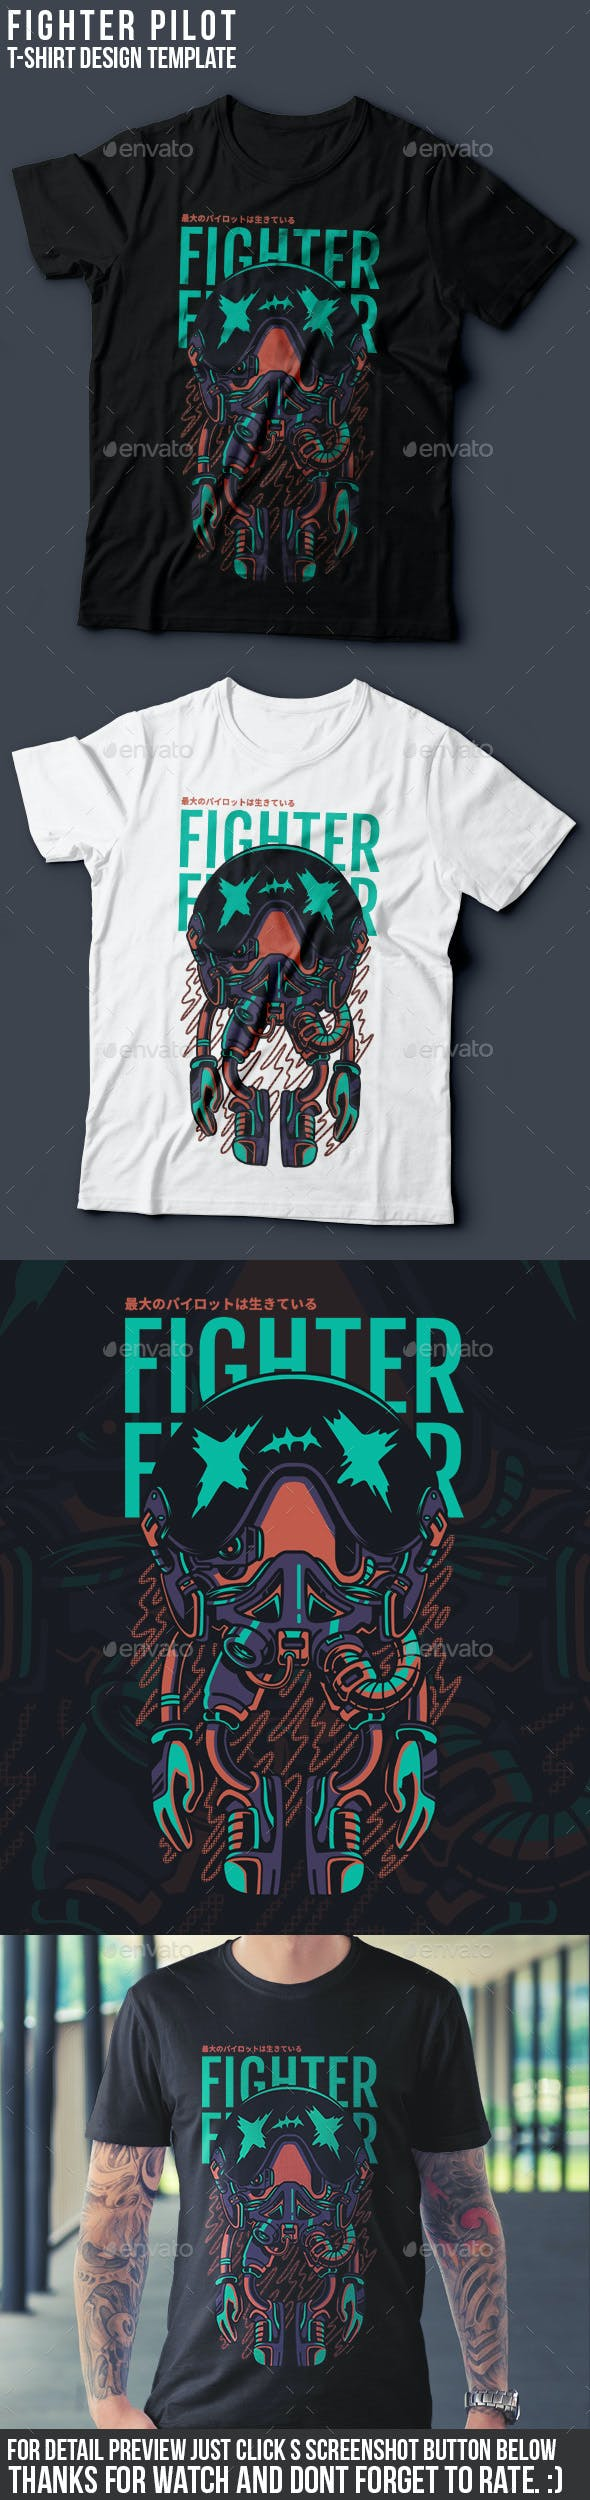 Jet Fighter T-Shirt Design